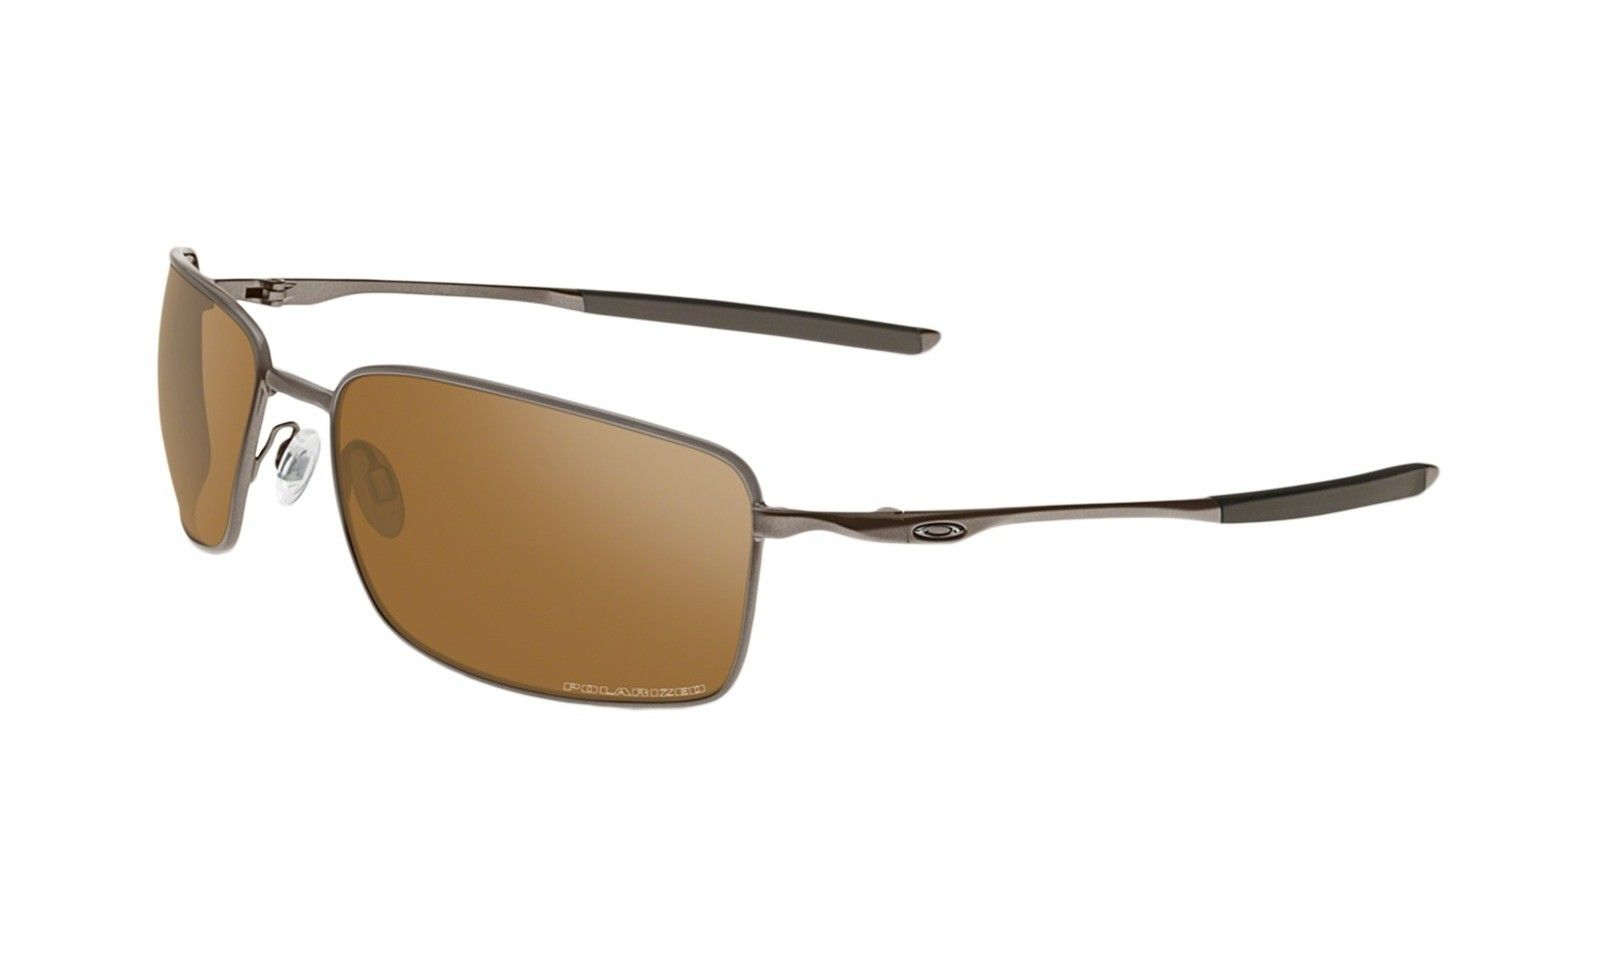 Oakley Square Wire Tungsten Color - main_OO4075-06_square-wire_tungsten-tungsten-irid-polar-1_001_60368_png_heroxl.jpg